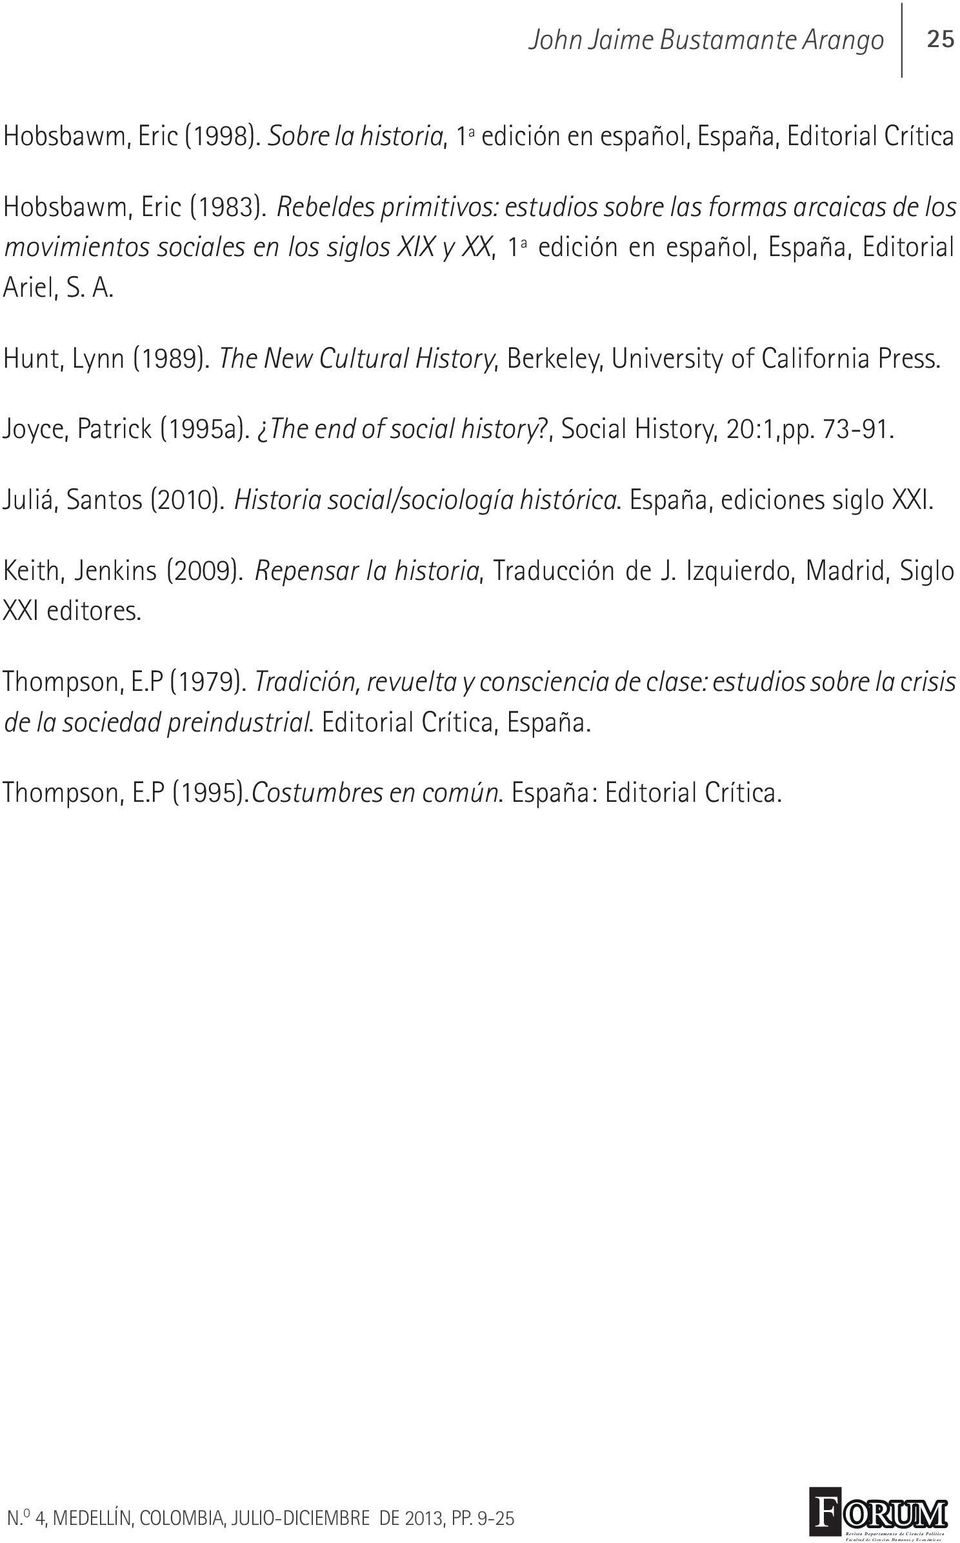 The New Cultural History, Berkeley, University of California Press. Joyce, Patrick (1995a). The end of social history?, Social History, 20:1,pp. 73-91. Juliá, Santos (2010).